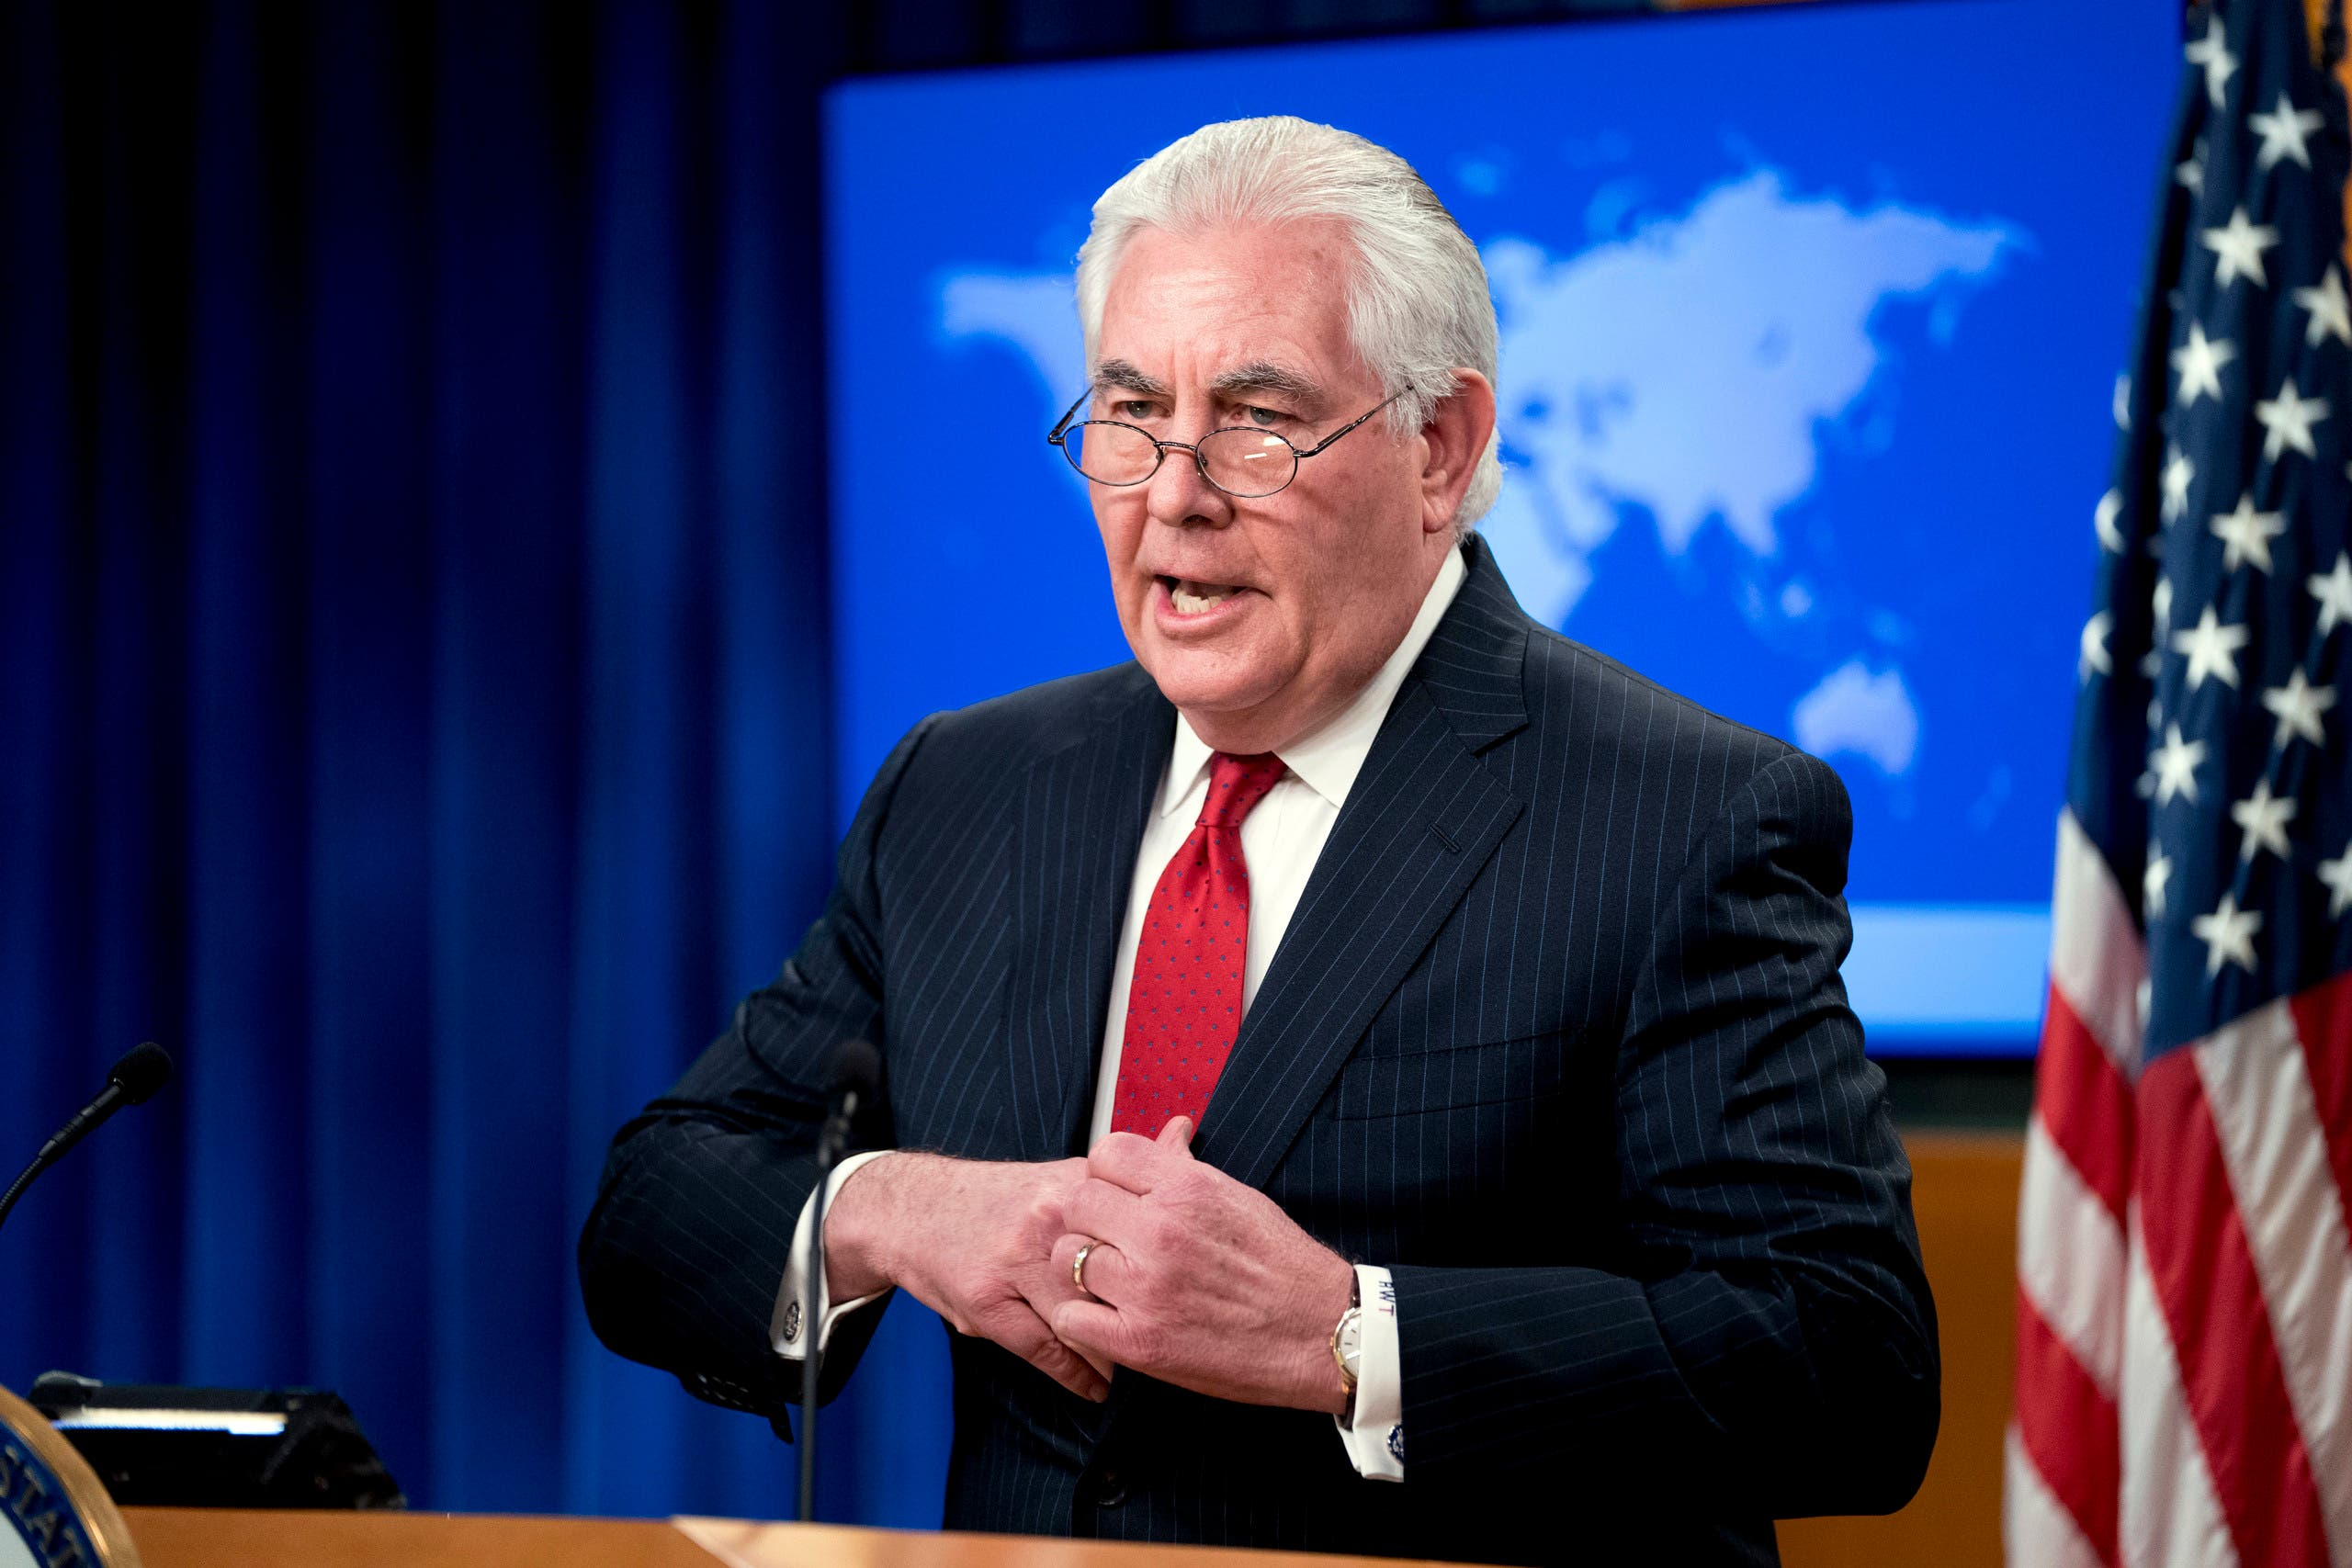 Secretary of State Rex Tillerson speaks at a news conference at the State Department in Washington, Tuesday, March 13, 2018. (AP)